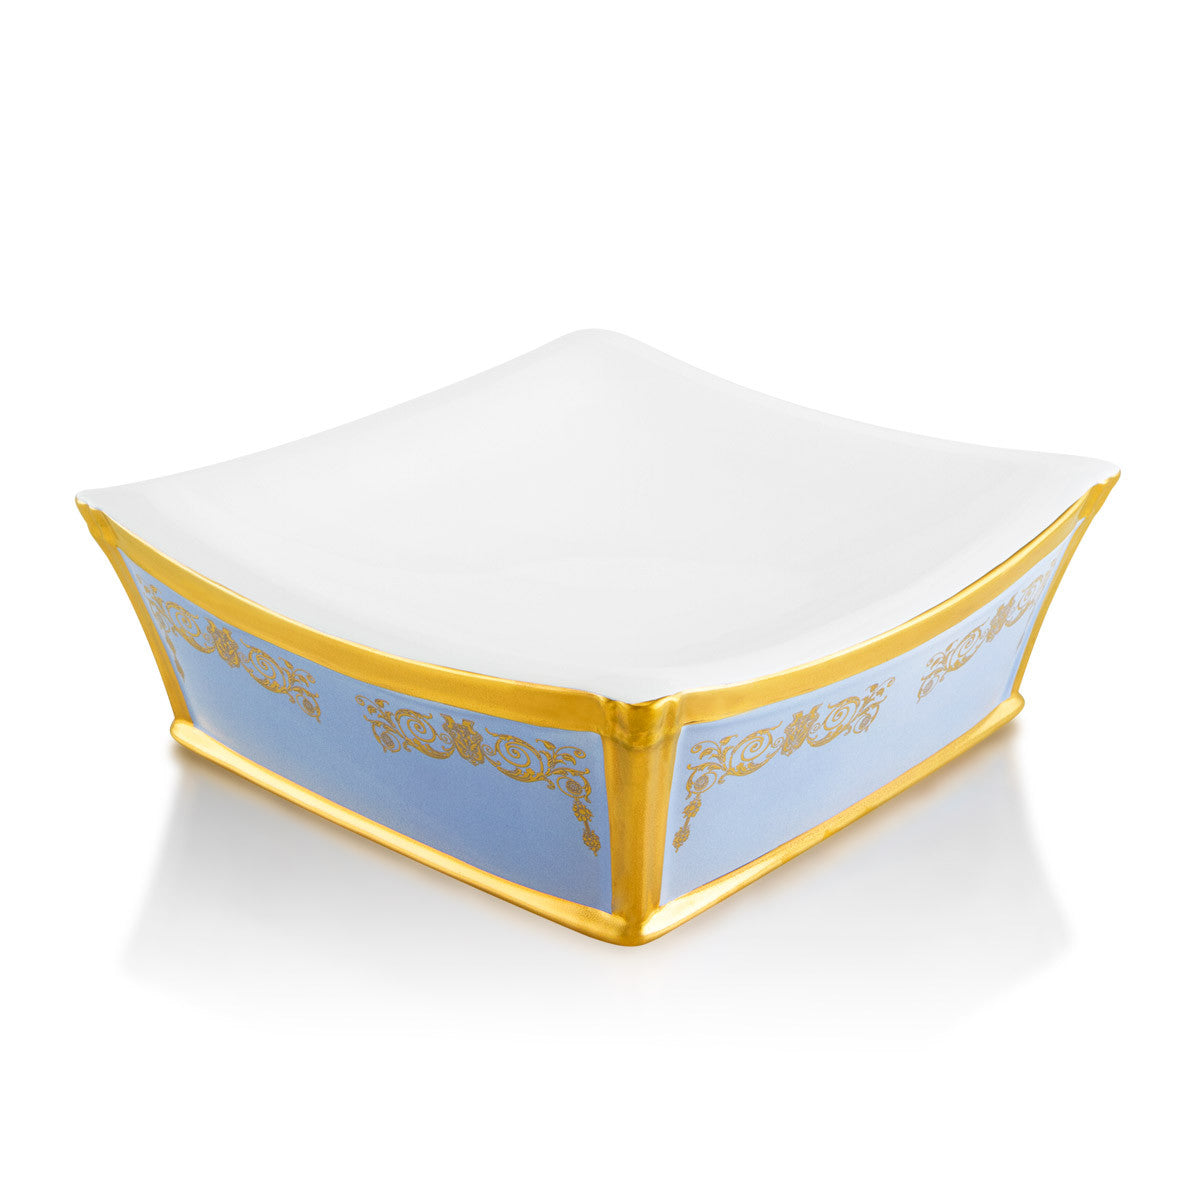 Ceramic decorative square bowl with gold ornaments